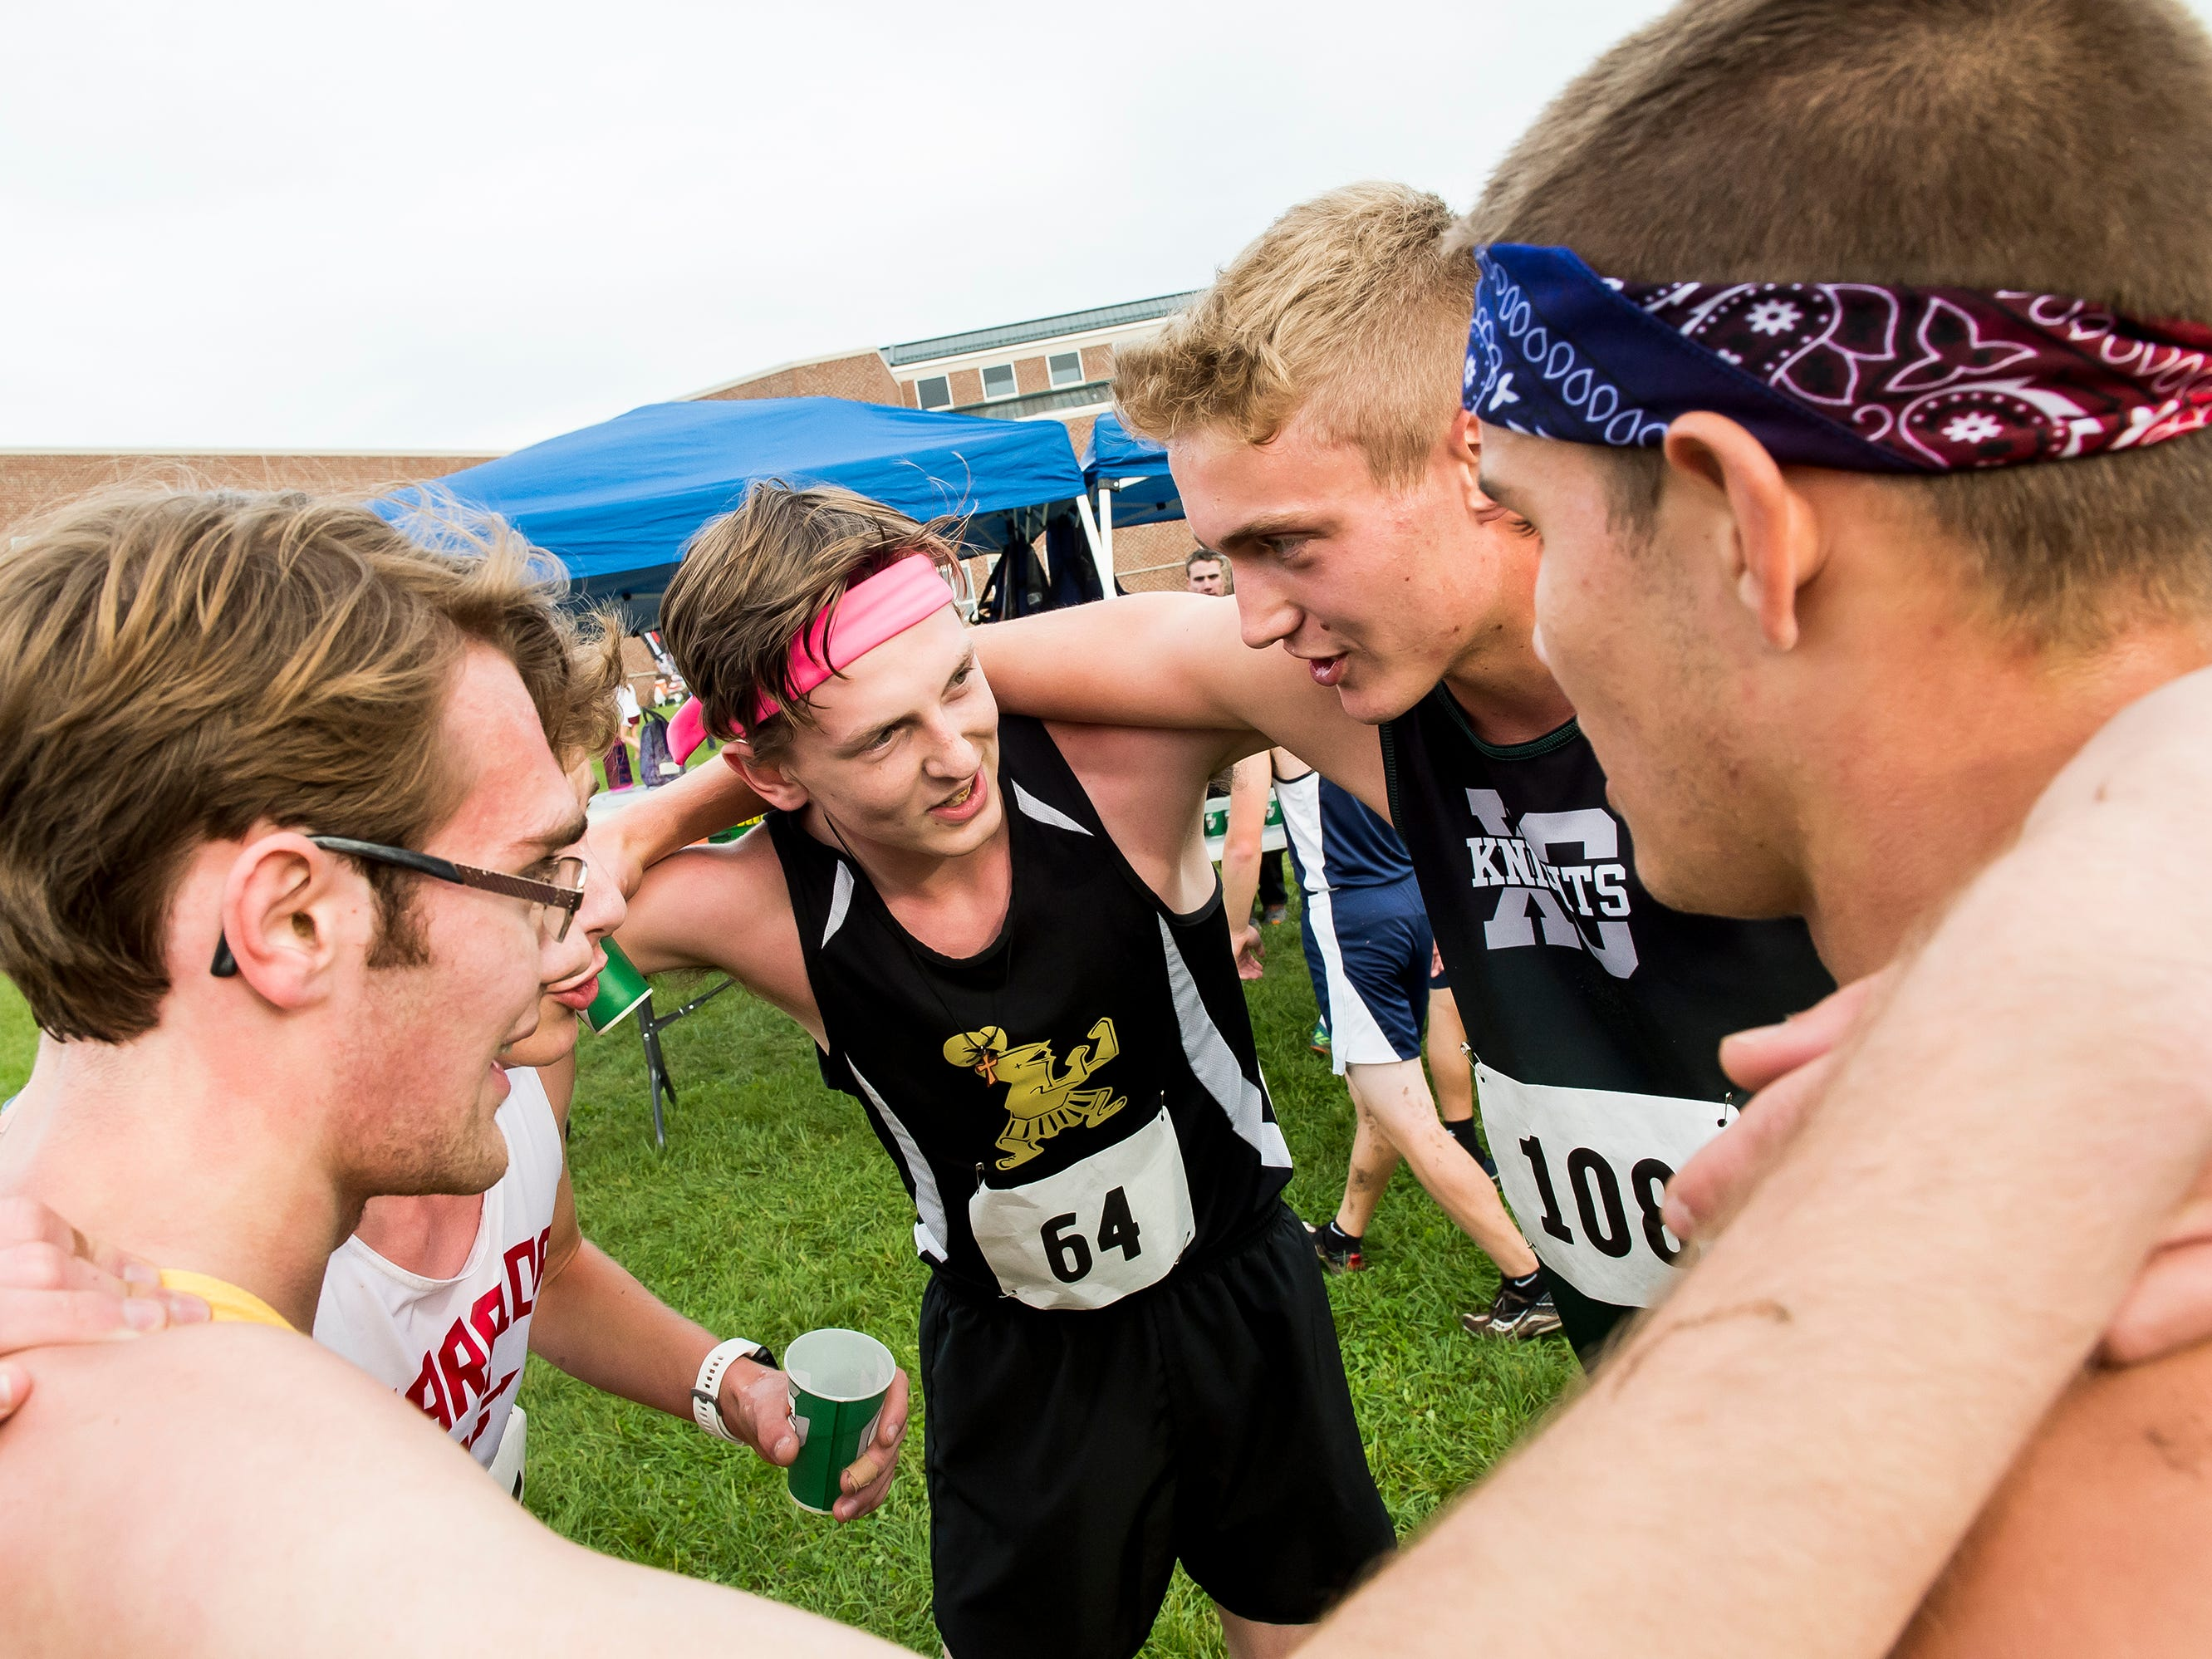 A group of runners huddle up after competing in the YAIAA cross country championships at Gettysburg Area High School on Tuesday, October 16, 2018.